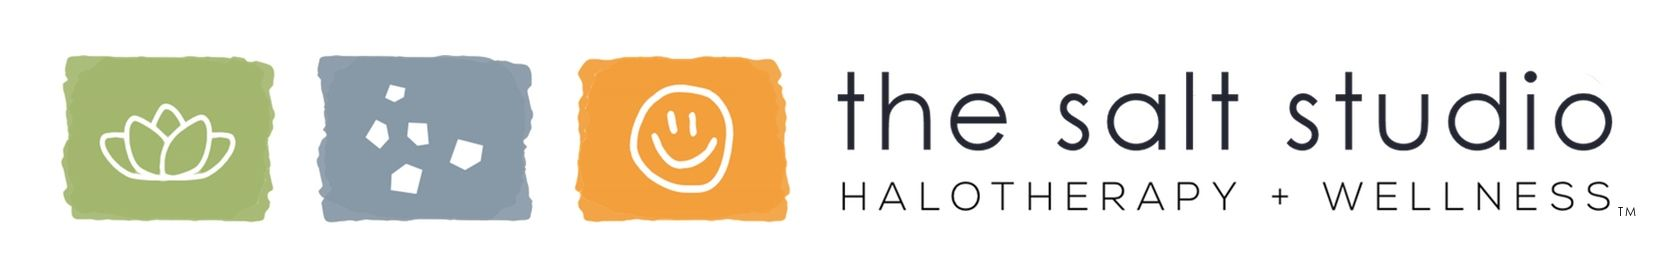 thesaltstudio Logo